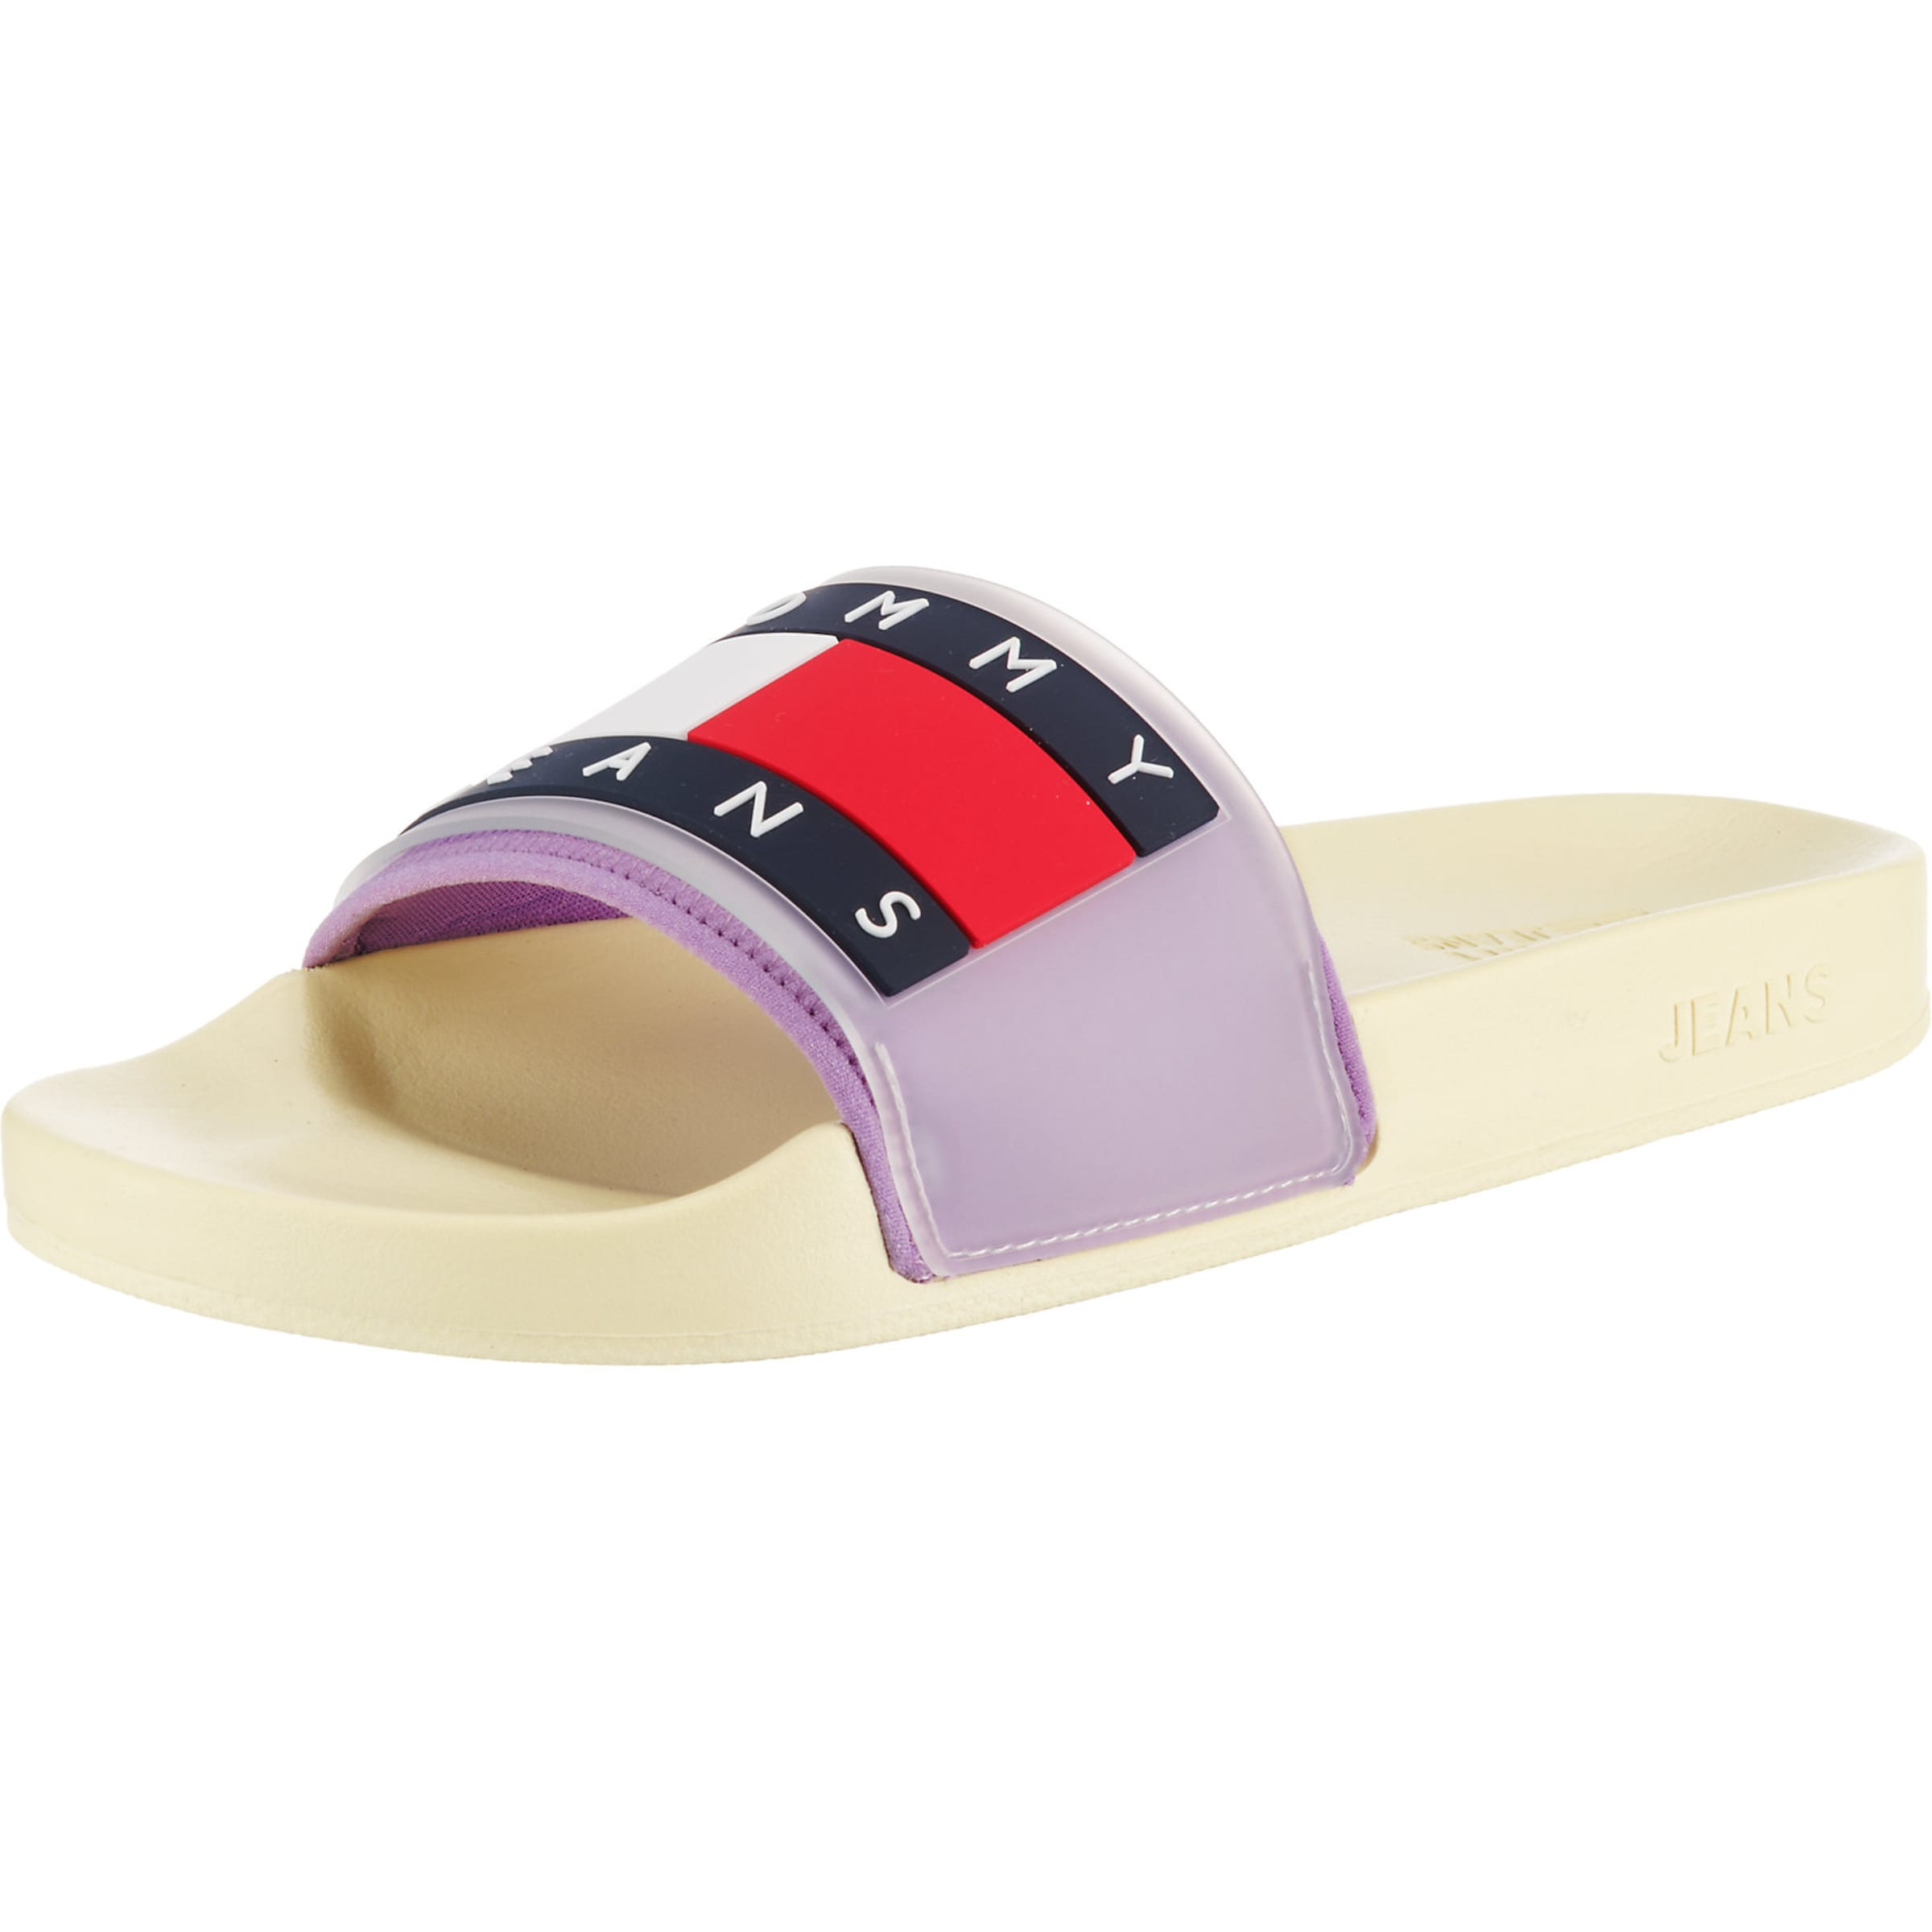 GelbHelllila Flag 'translucent In Jeans Slide' Slipper Tommy Pool vOmN8n0ywP